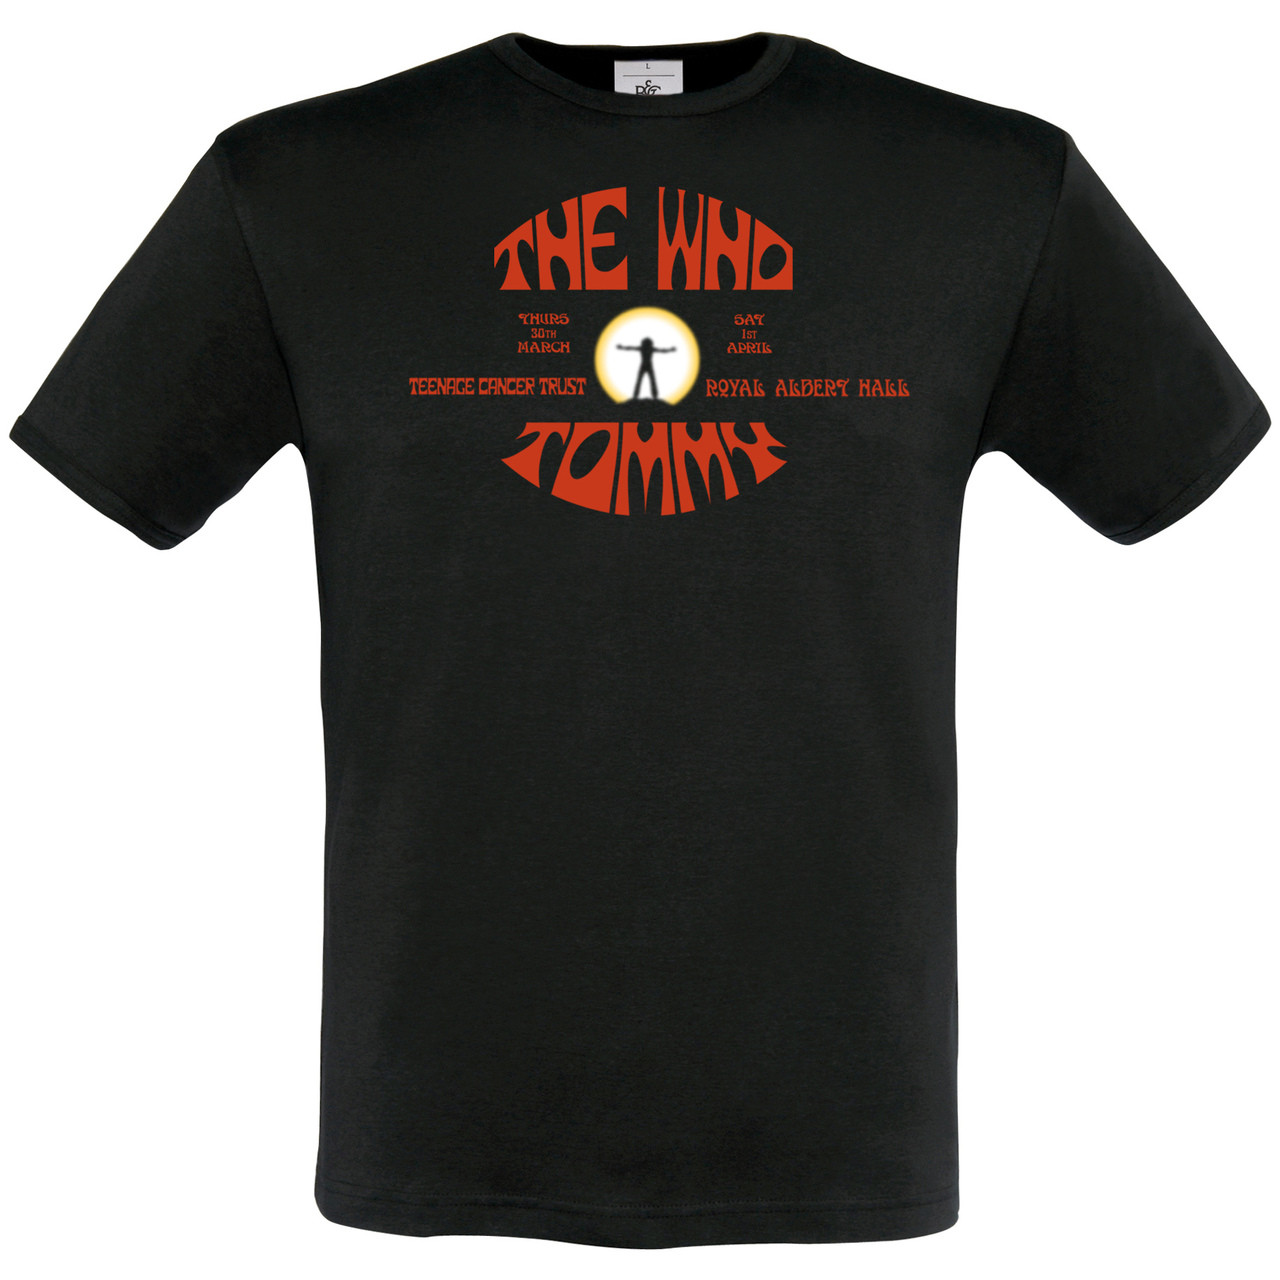 wholesale dealer 17159 0a7ba The Who at the Royal Albert Hall Event T-Shirt